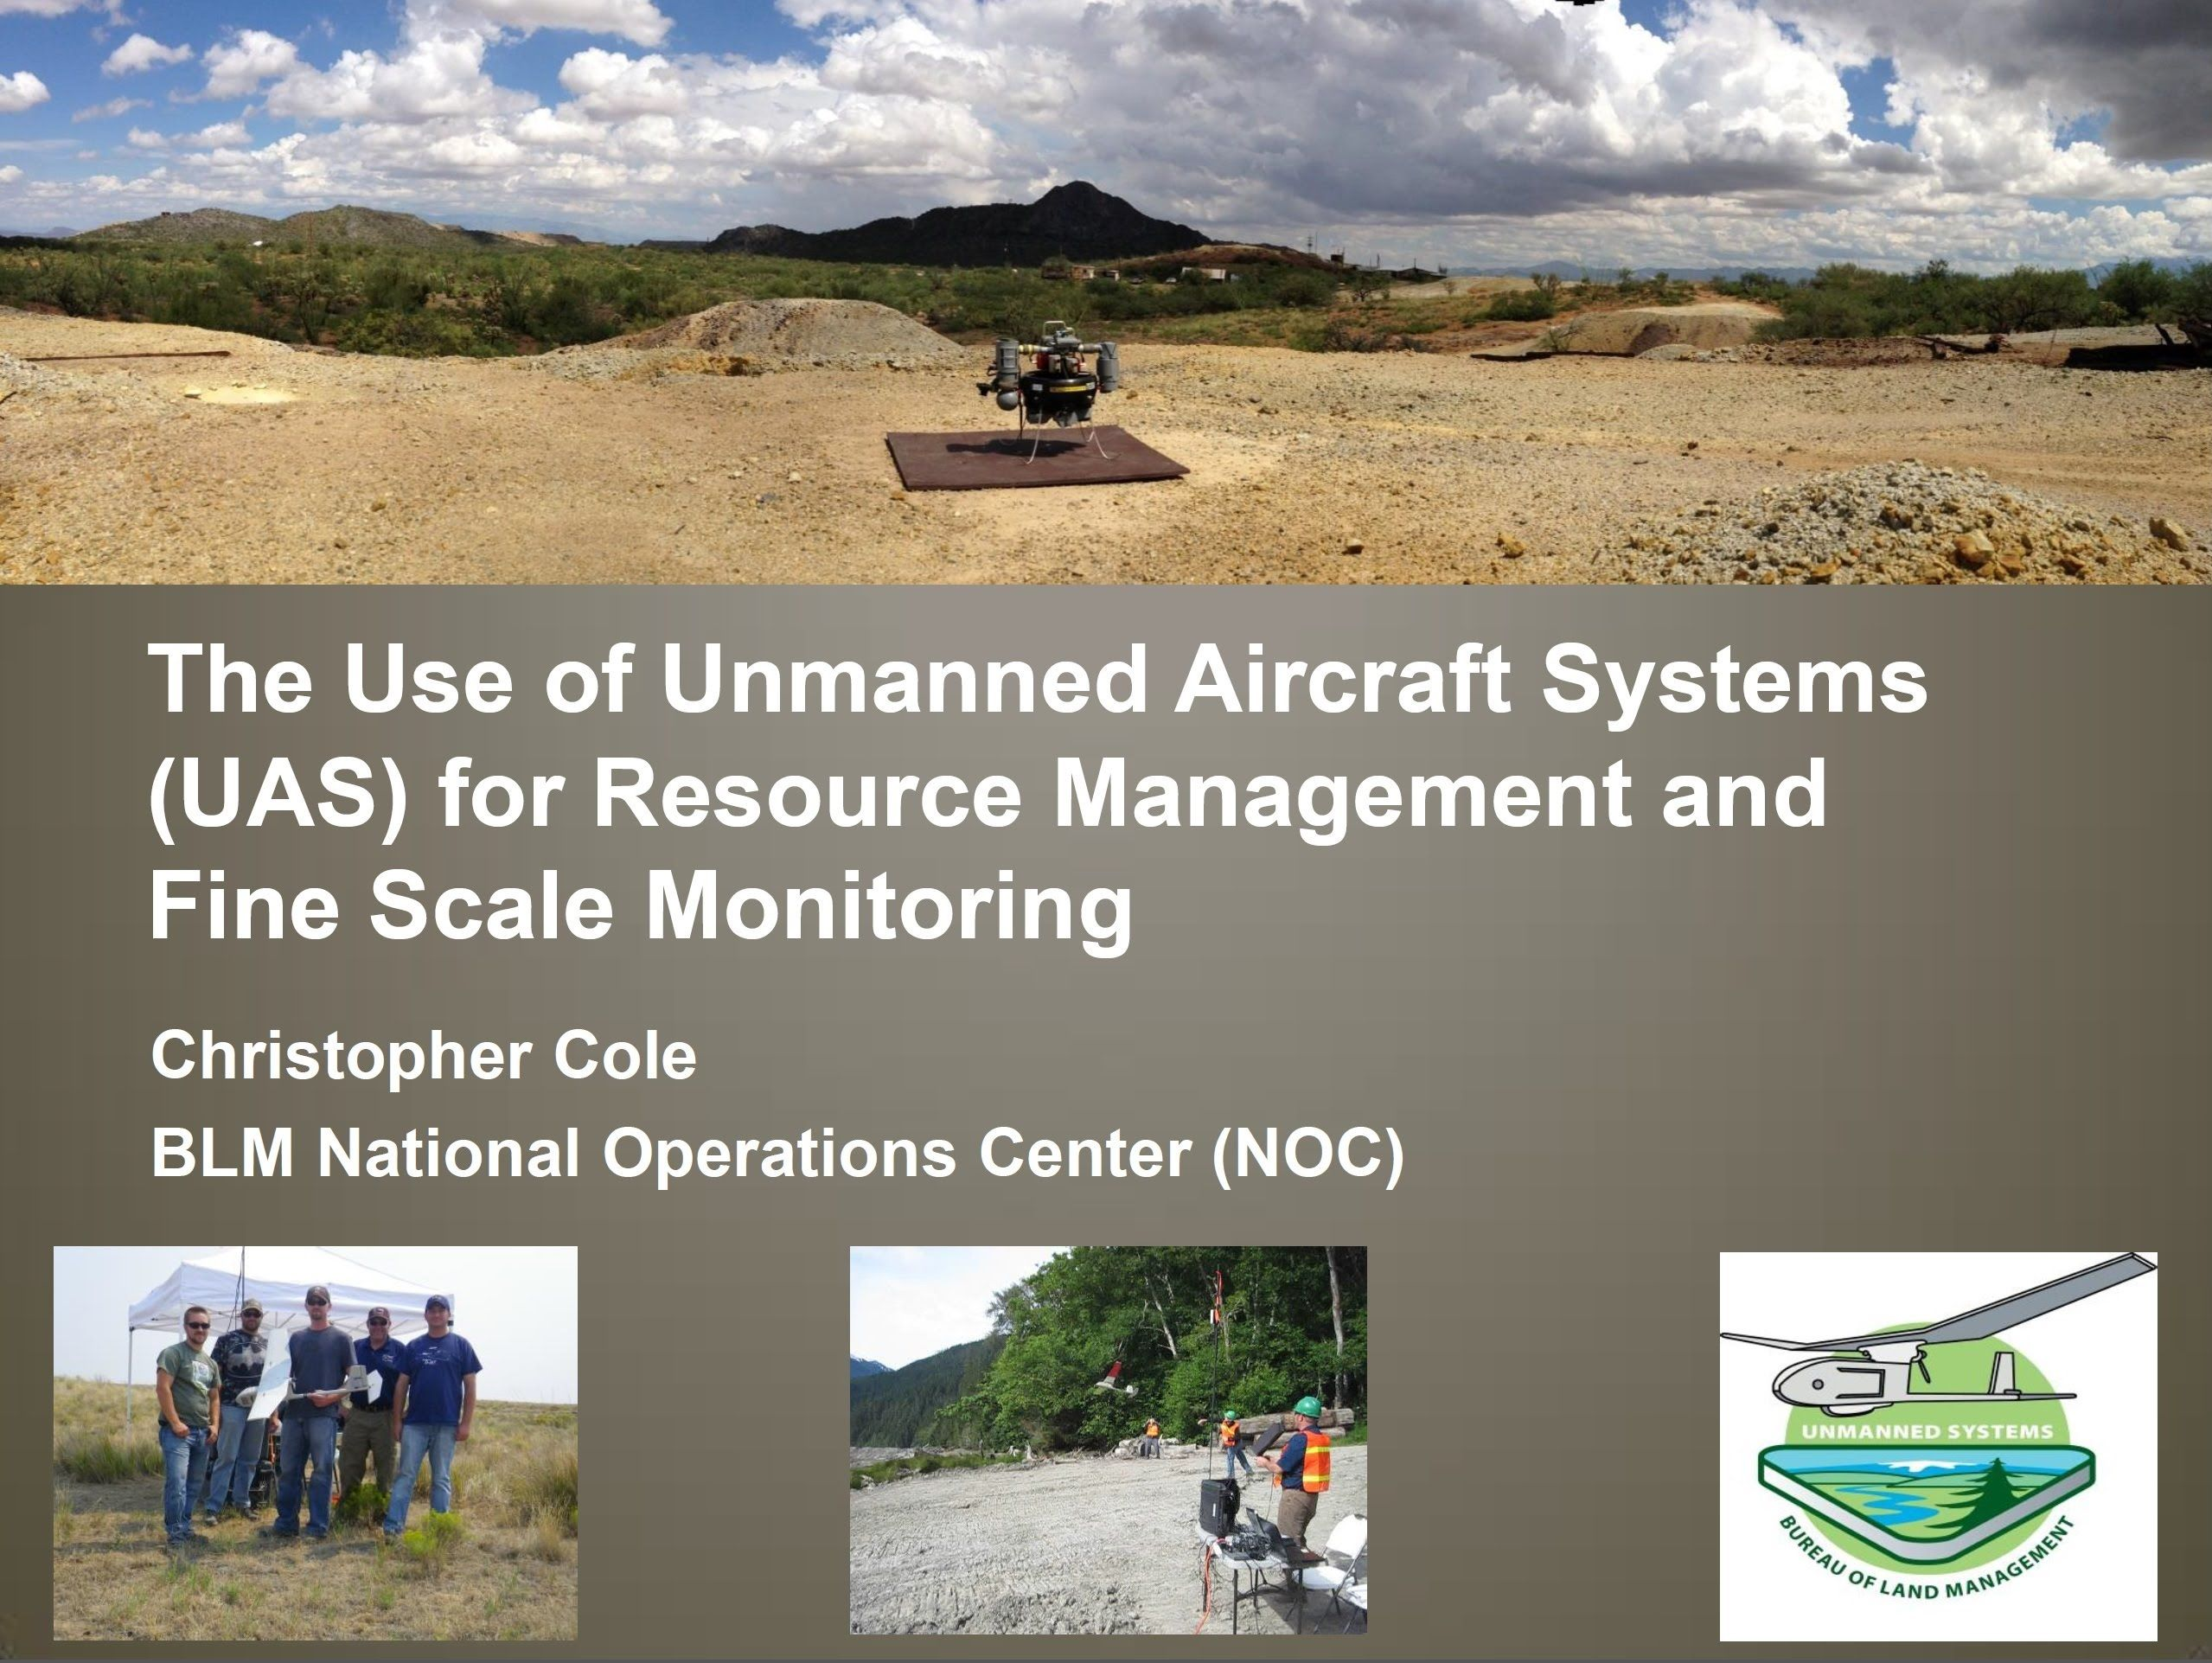 Srm 2015 fine scale monitoring with unmanned aerial systems srm 2015 fine scale monitoring with unmanned aerial systems precision agriculture for everyone pinterest sciox Images